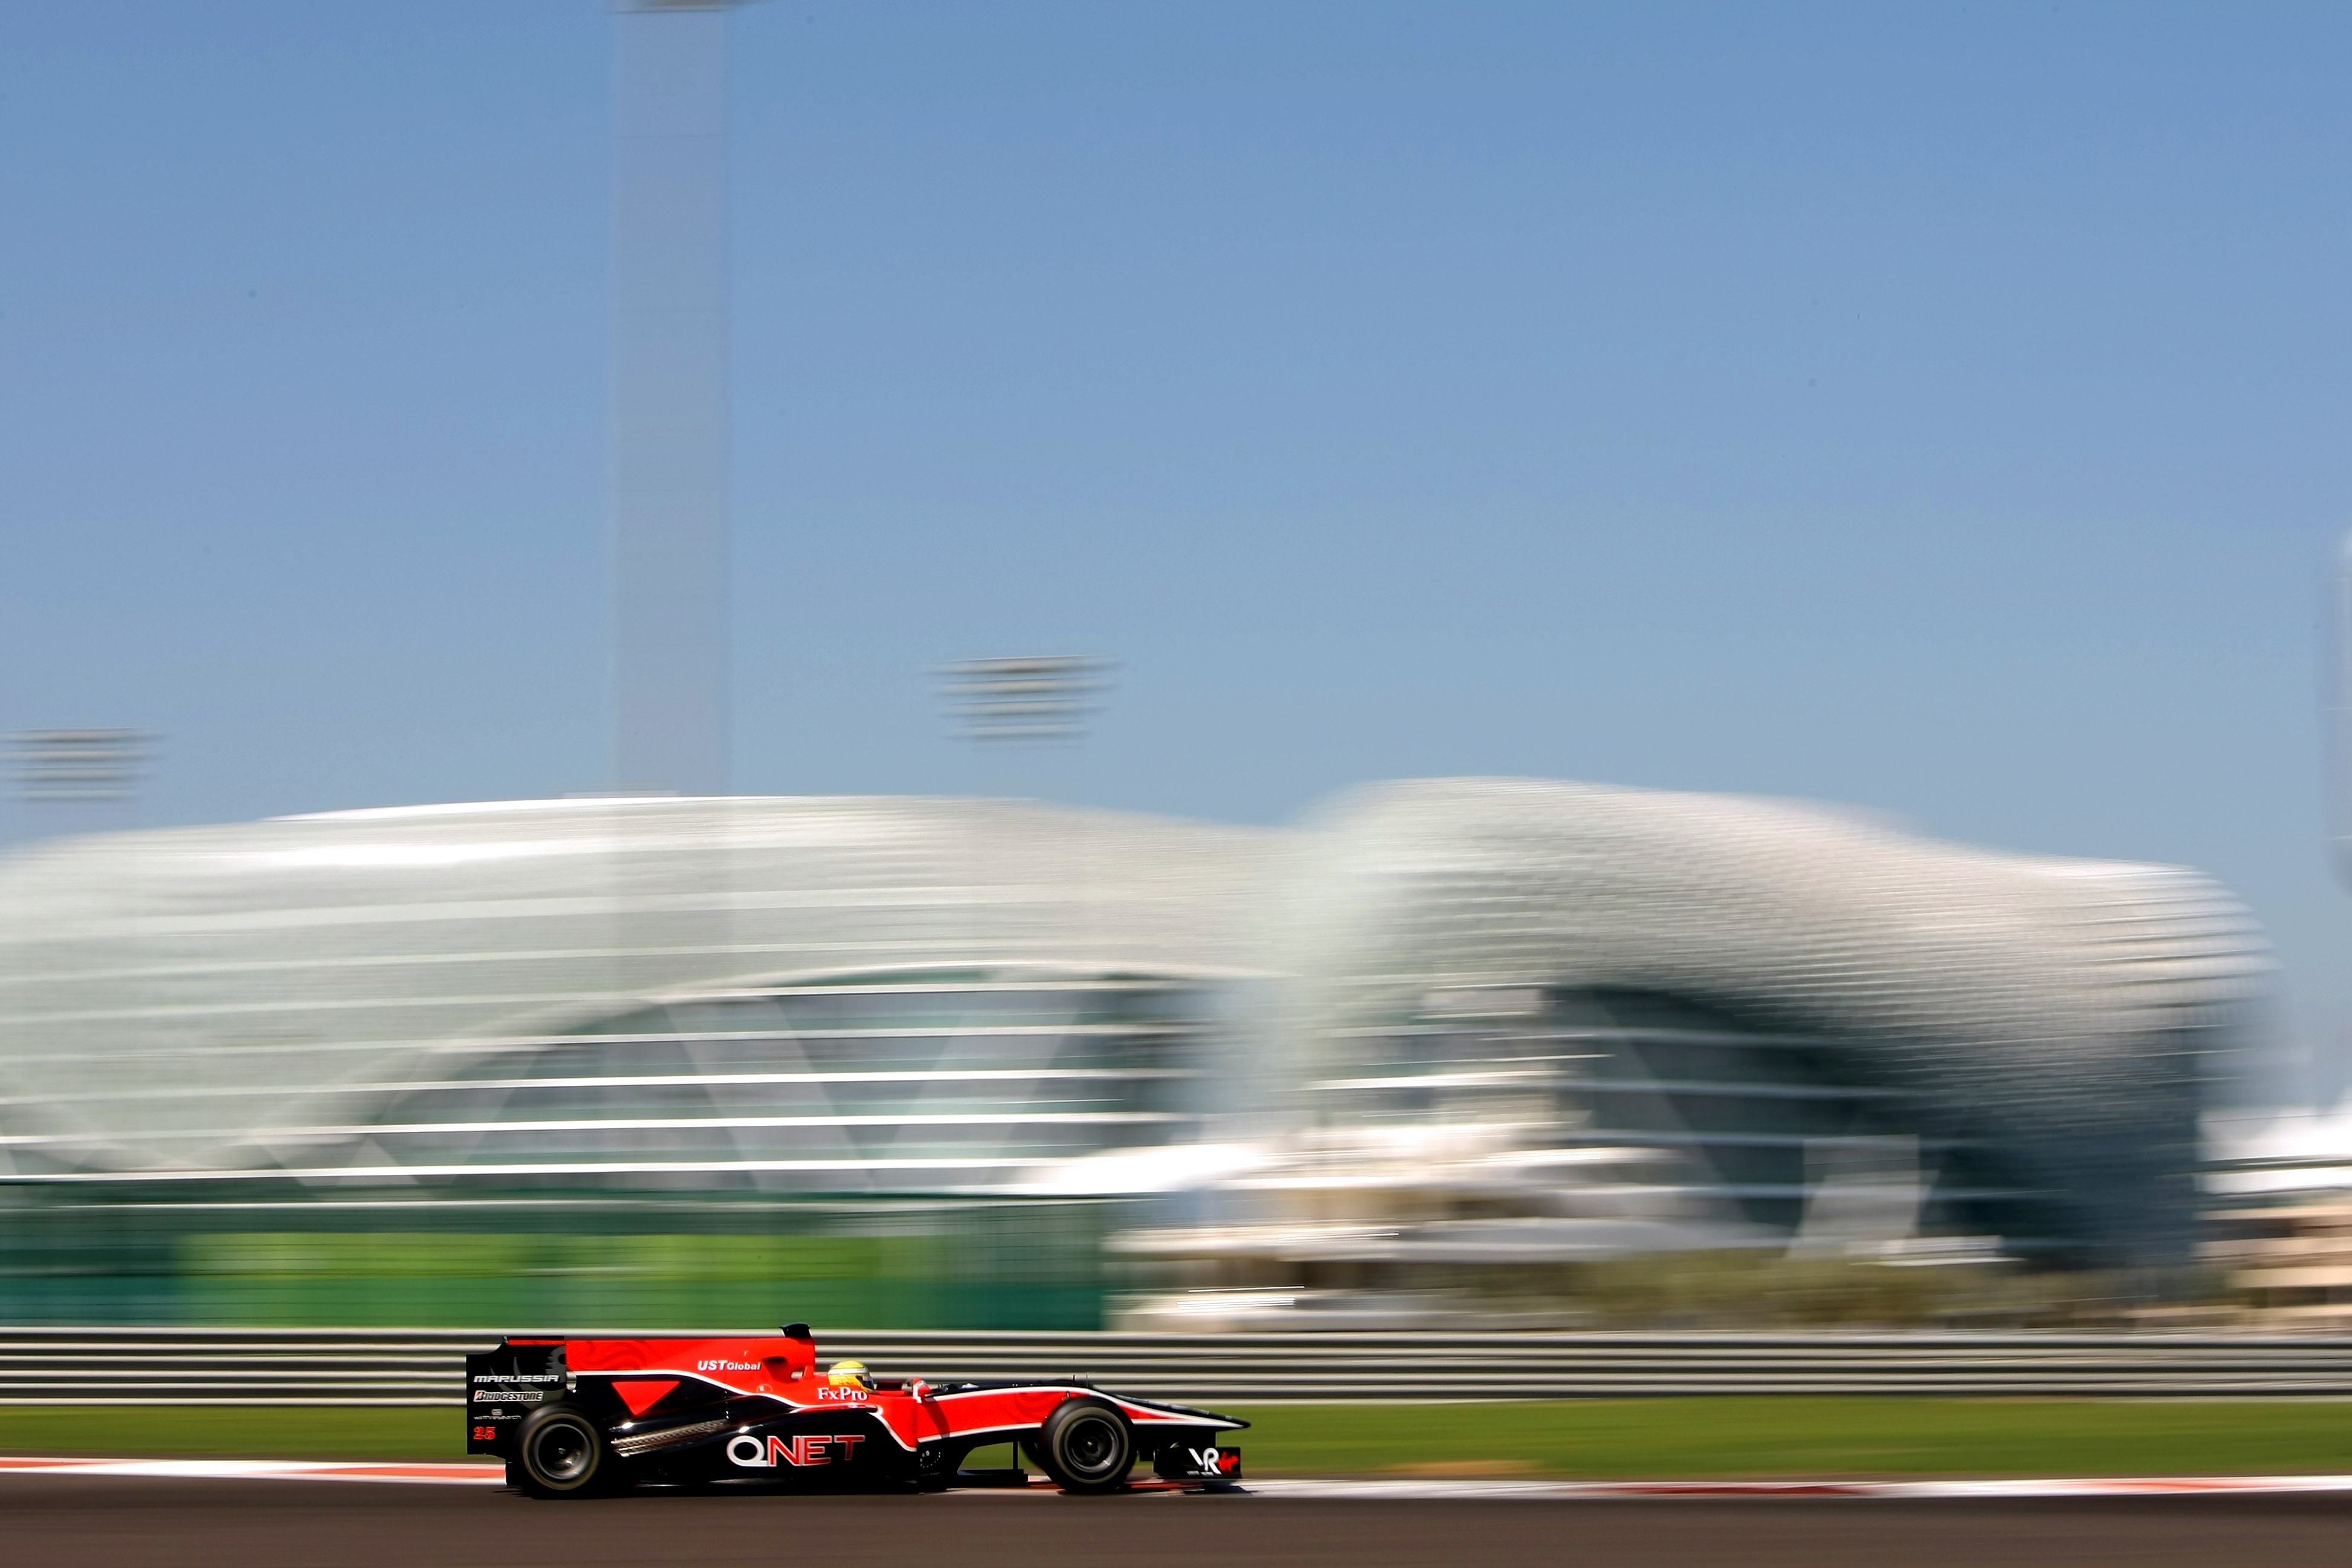 ABU DHABI, UNITED ARAB EMIRATES - NOVEMBER 17: Luiz Razia of Brazil and Virgin Racing in action during the Young Driver Testing at the Yas Marina Circuit on November 17, 2010 in Abu Dhabi, United Arab Emirates. (Photo by Andrew Hone/Getty Images)